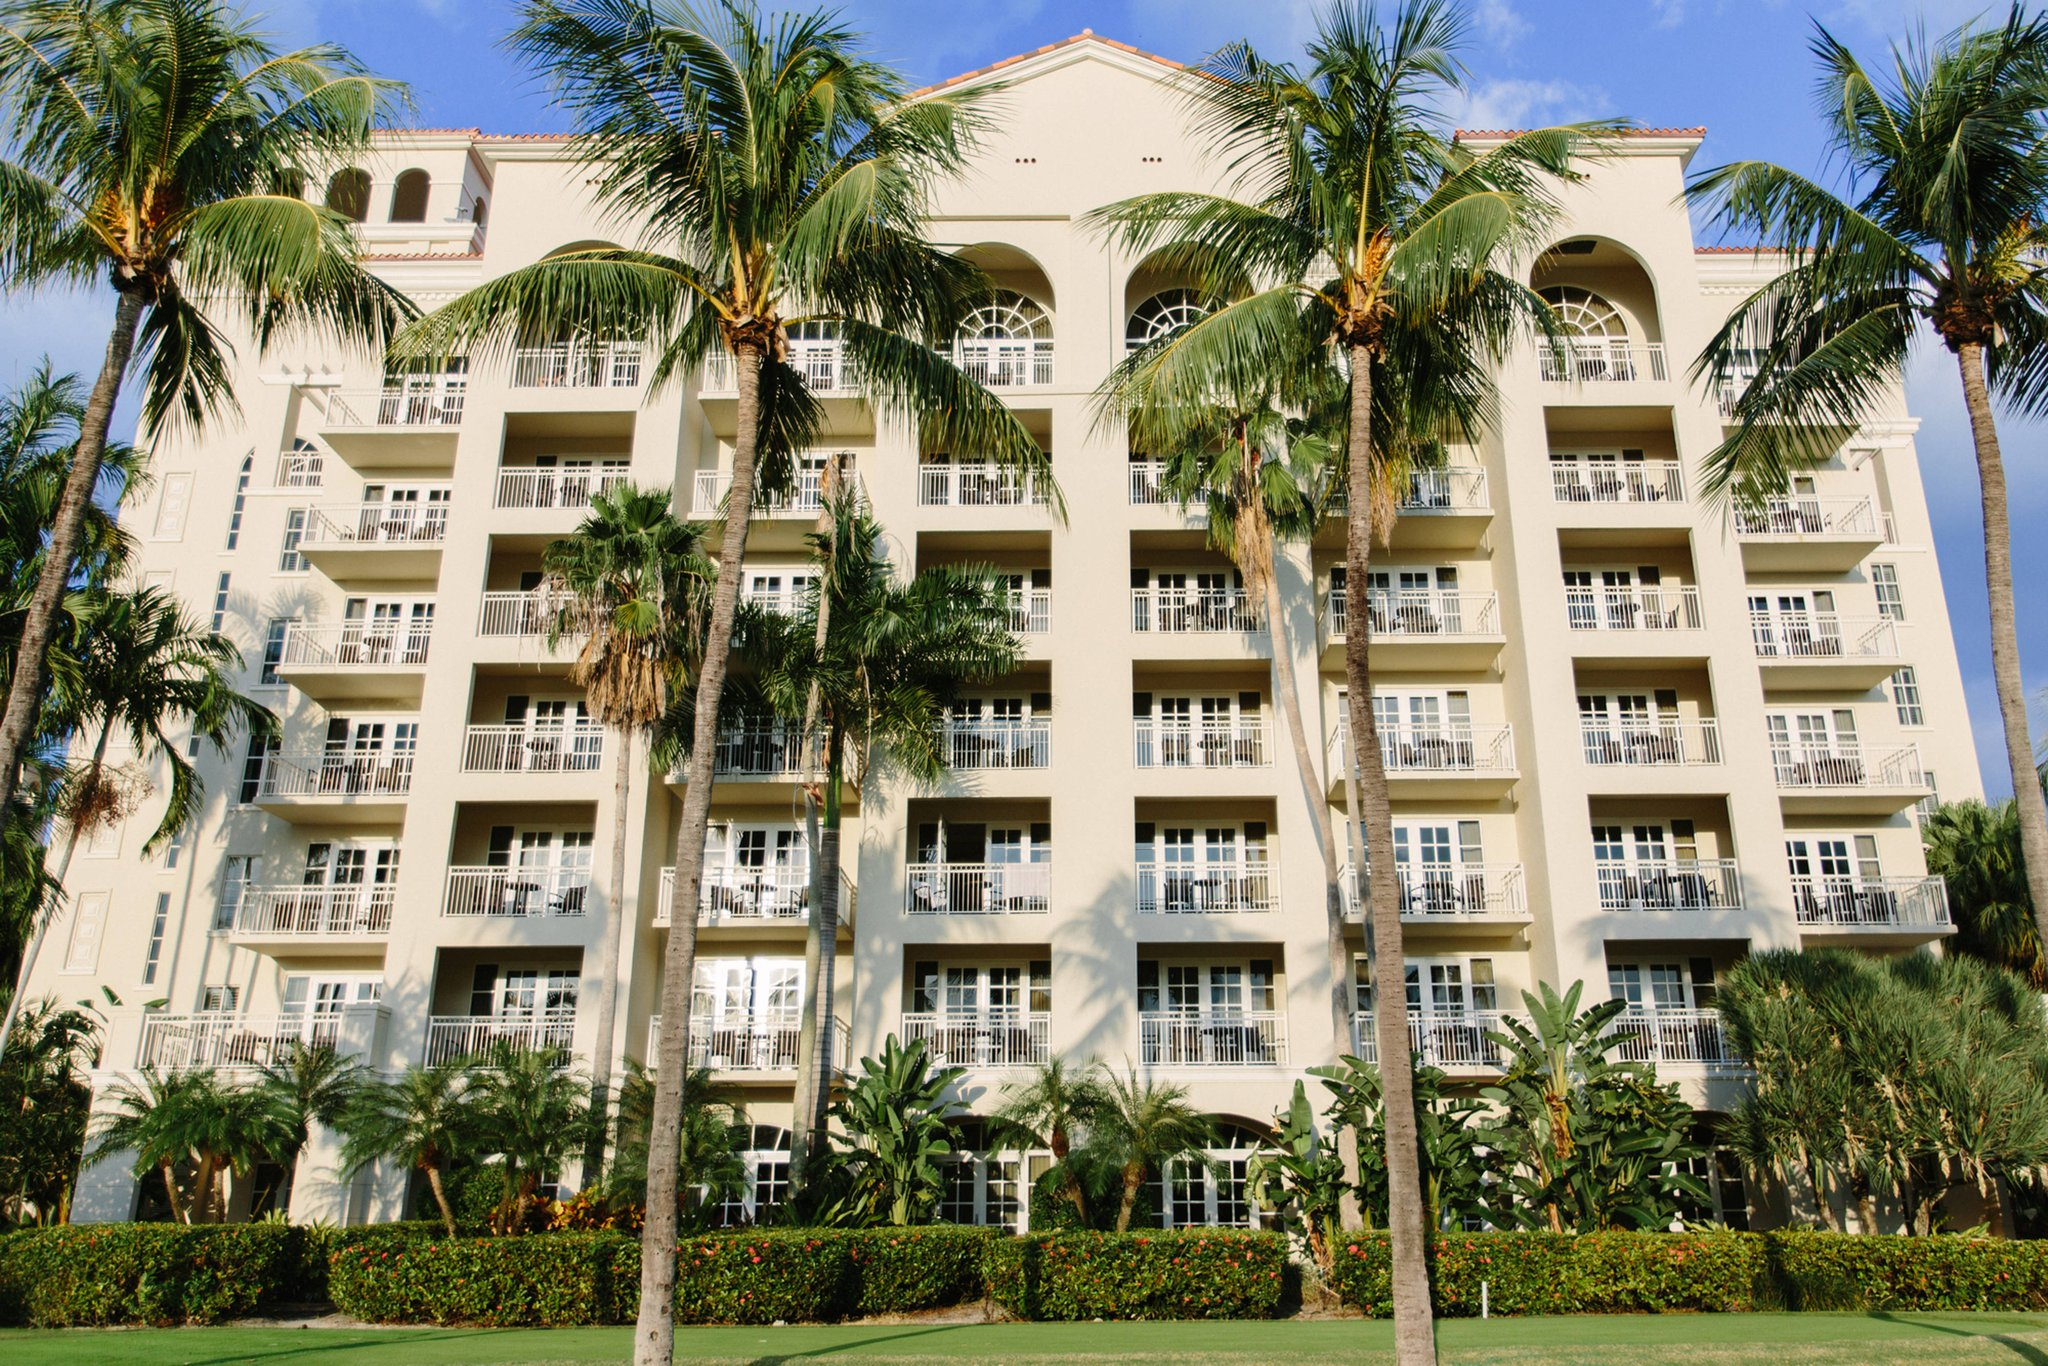 JW Marriott Miami Turnberry Resort